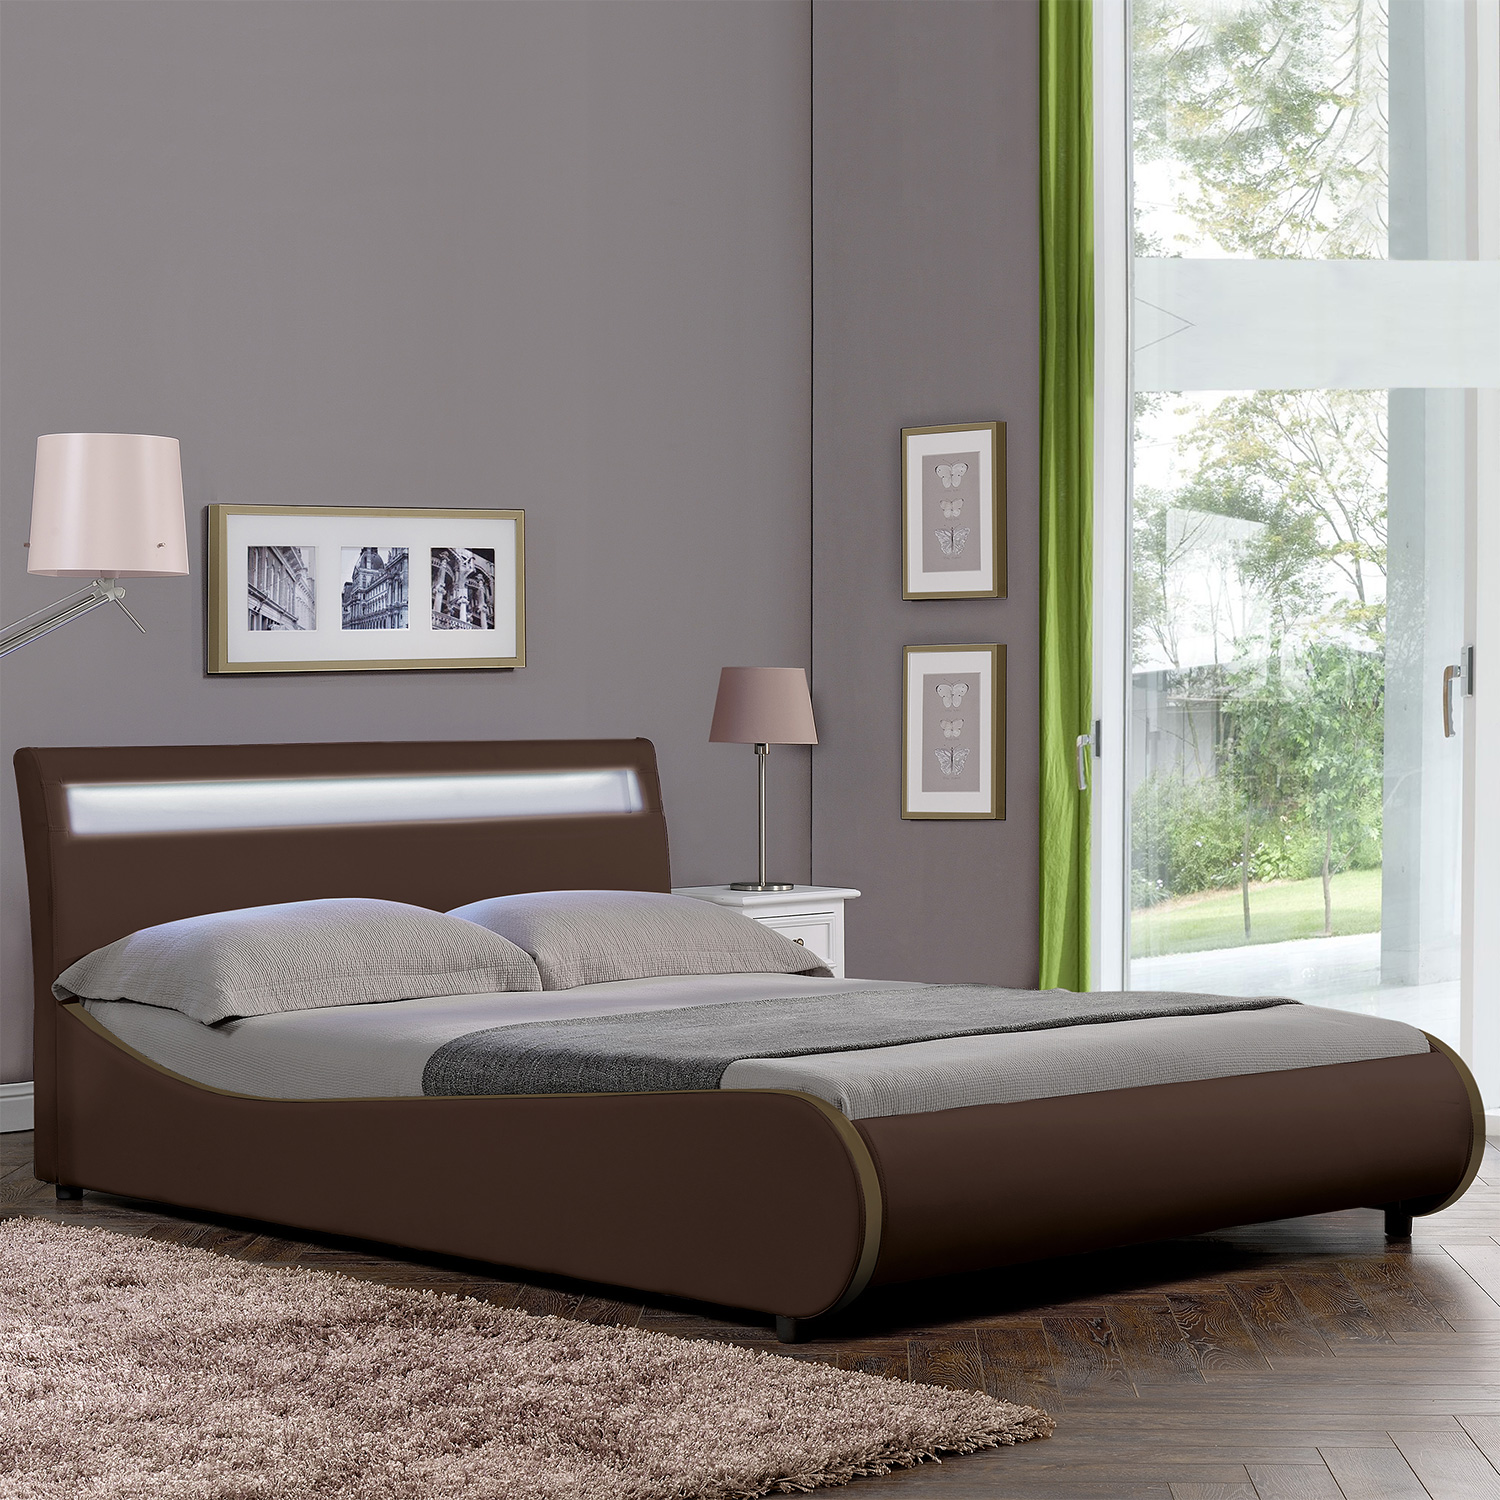 corium led polsterbett 140 180 x 200cm kunst leder doppel ehe bett schwarz wei ebay. Black Bedroom Furniture Sets. Home Design Ideas